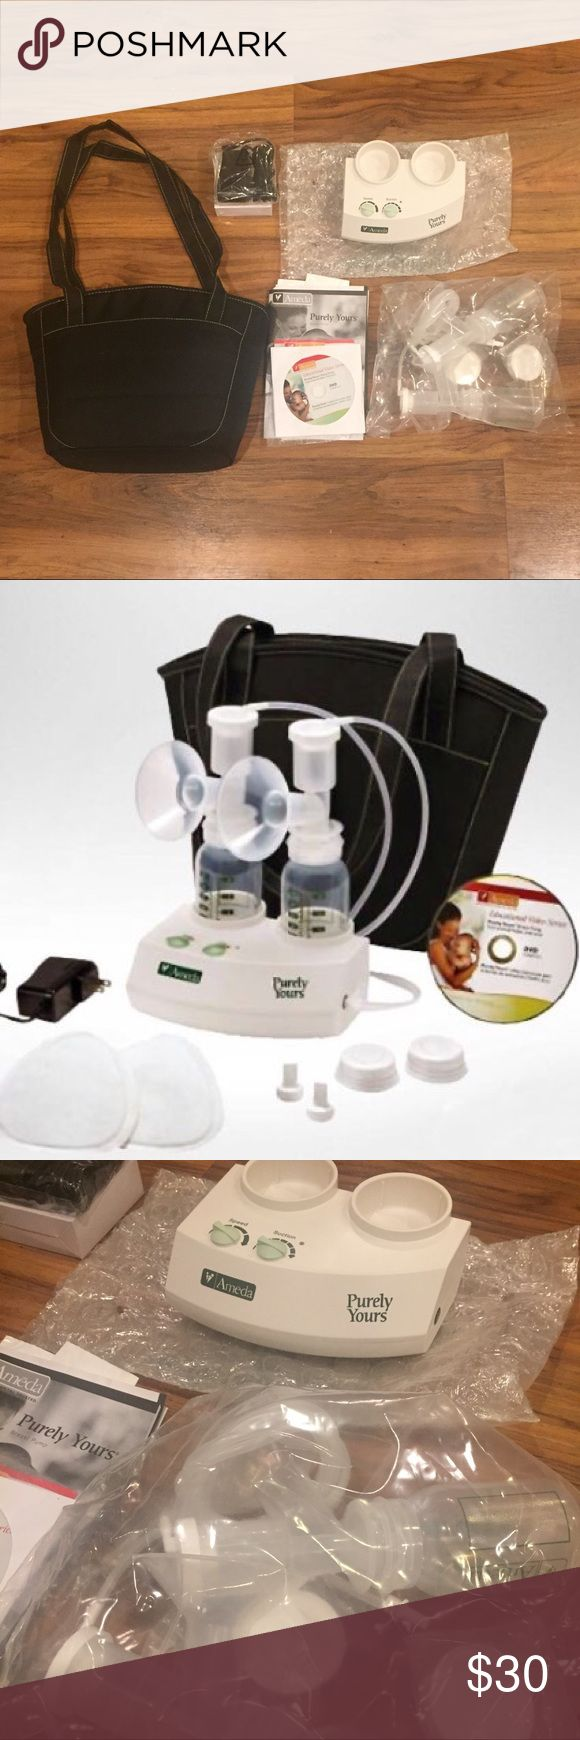 Ameda Purely Yours Breast Pump Ameda Purely Yours electric breast pump. Contents: motor unit Dual HygieniKit Milk Collection System (2) 25.0mm breast flanges  (2) diaphragms,  (2) 4 oz. bottles with universal thread, and lock-tight lids,  (2) valves,  (2) tubing,  (2) adapter cap,  (1) tubing adapter for single or dual pumping Carrying Tote AC Power Adapter Instructions, including low-literacy instructions in English and in Spanish Instructional DVD in English and Spanish Sample Pack Premium…